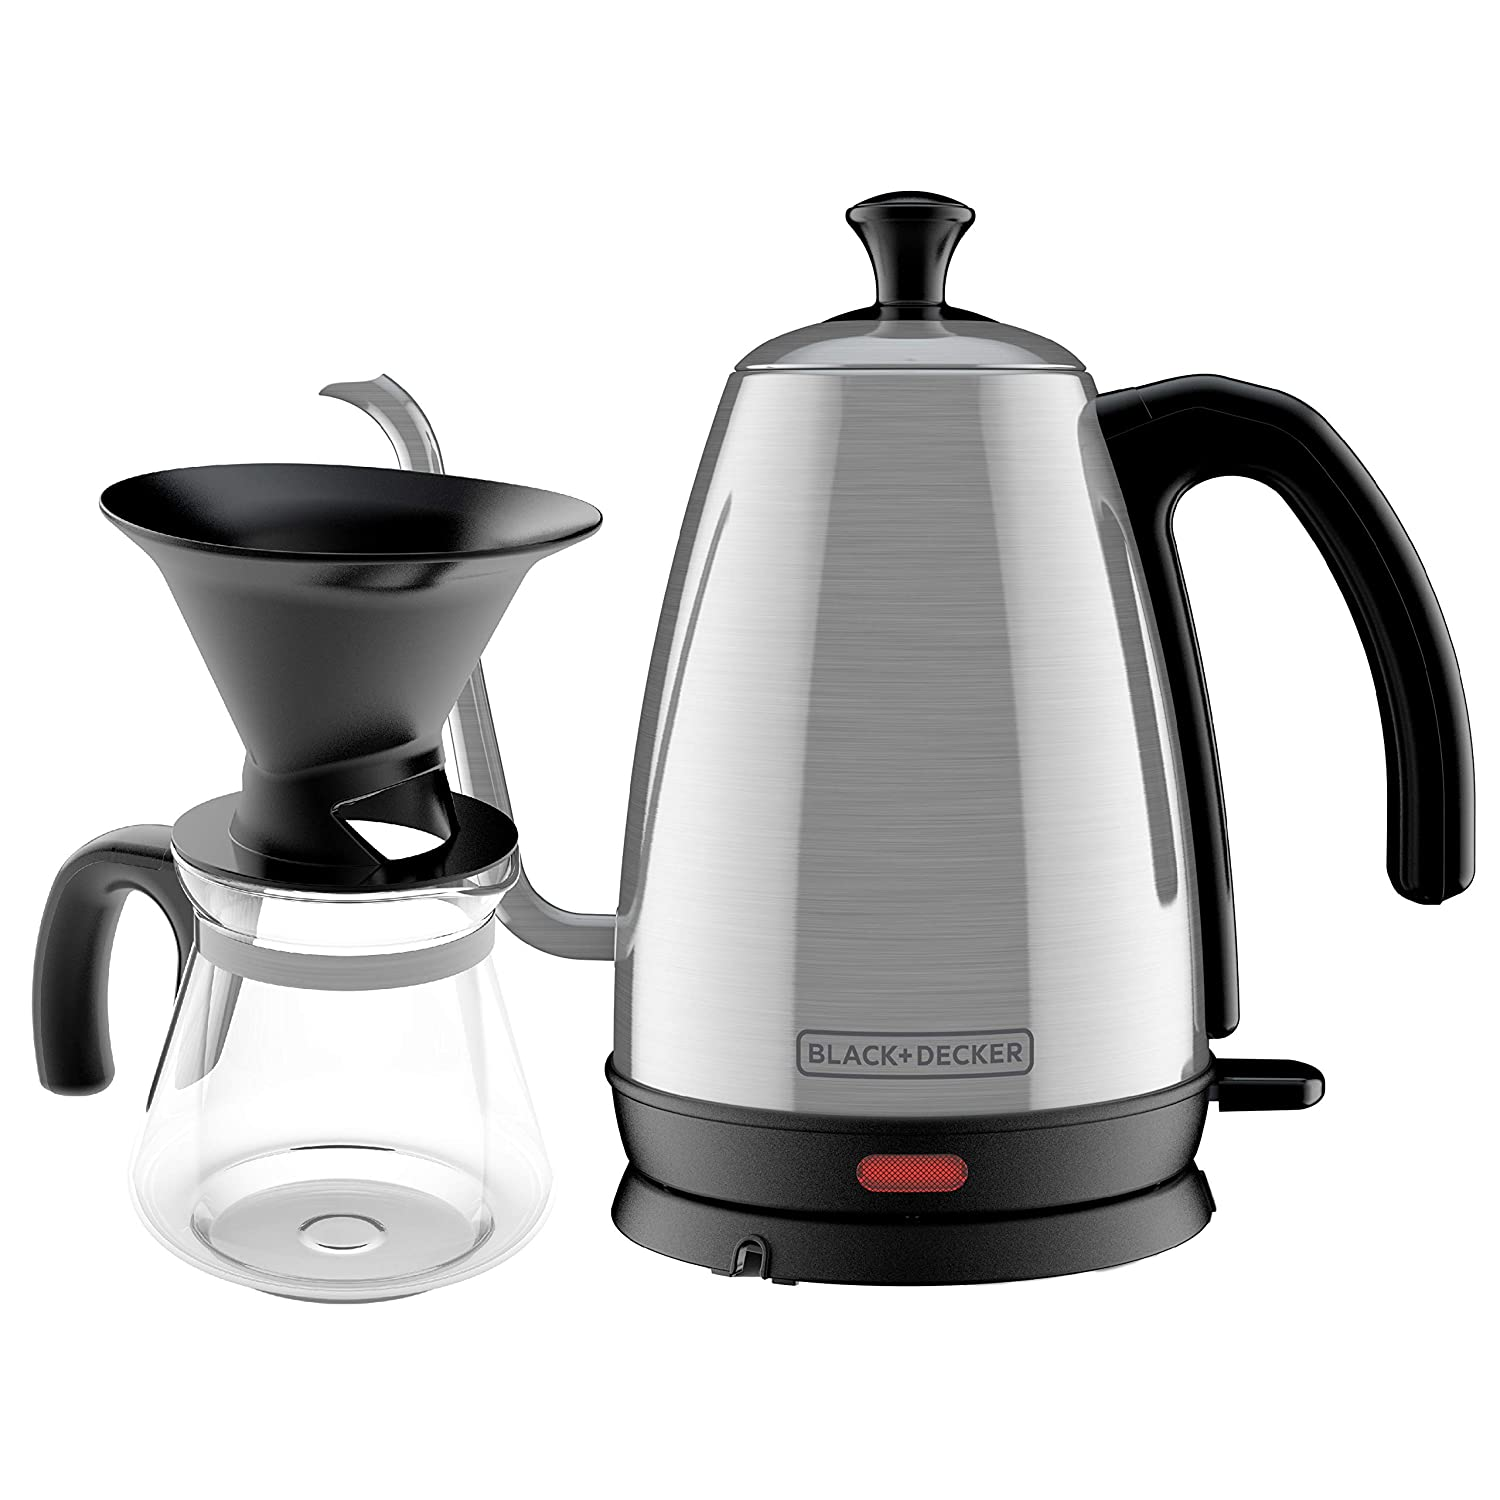 BLACK+DECKER KE3000S-KIT Gooseneck Kettle, 4 Piece Pour Over Coffee Kit, 1 L, Stainless Steel